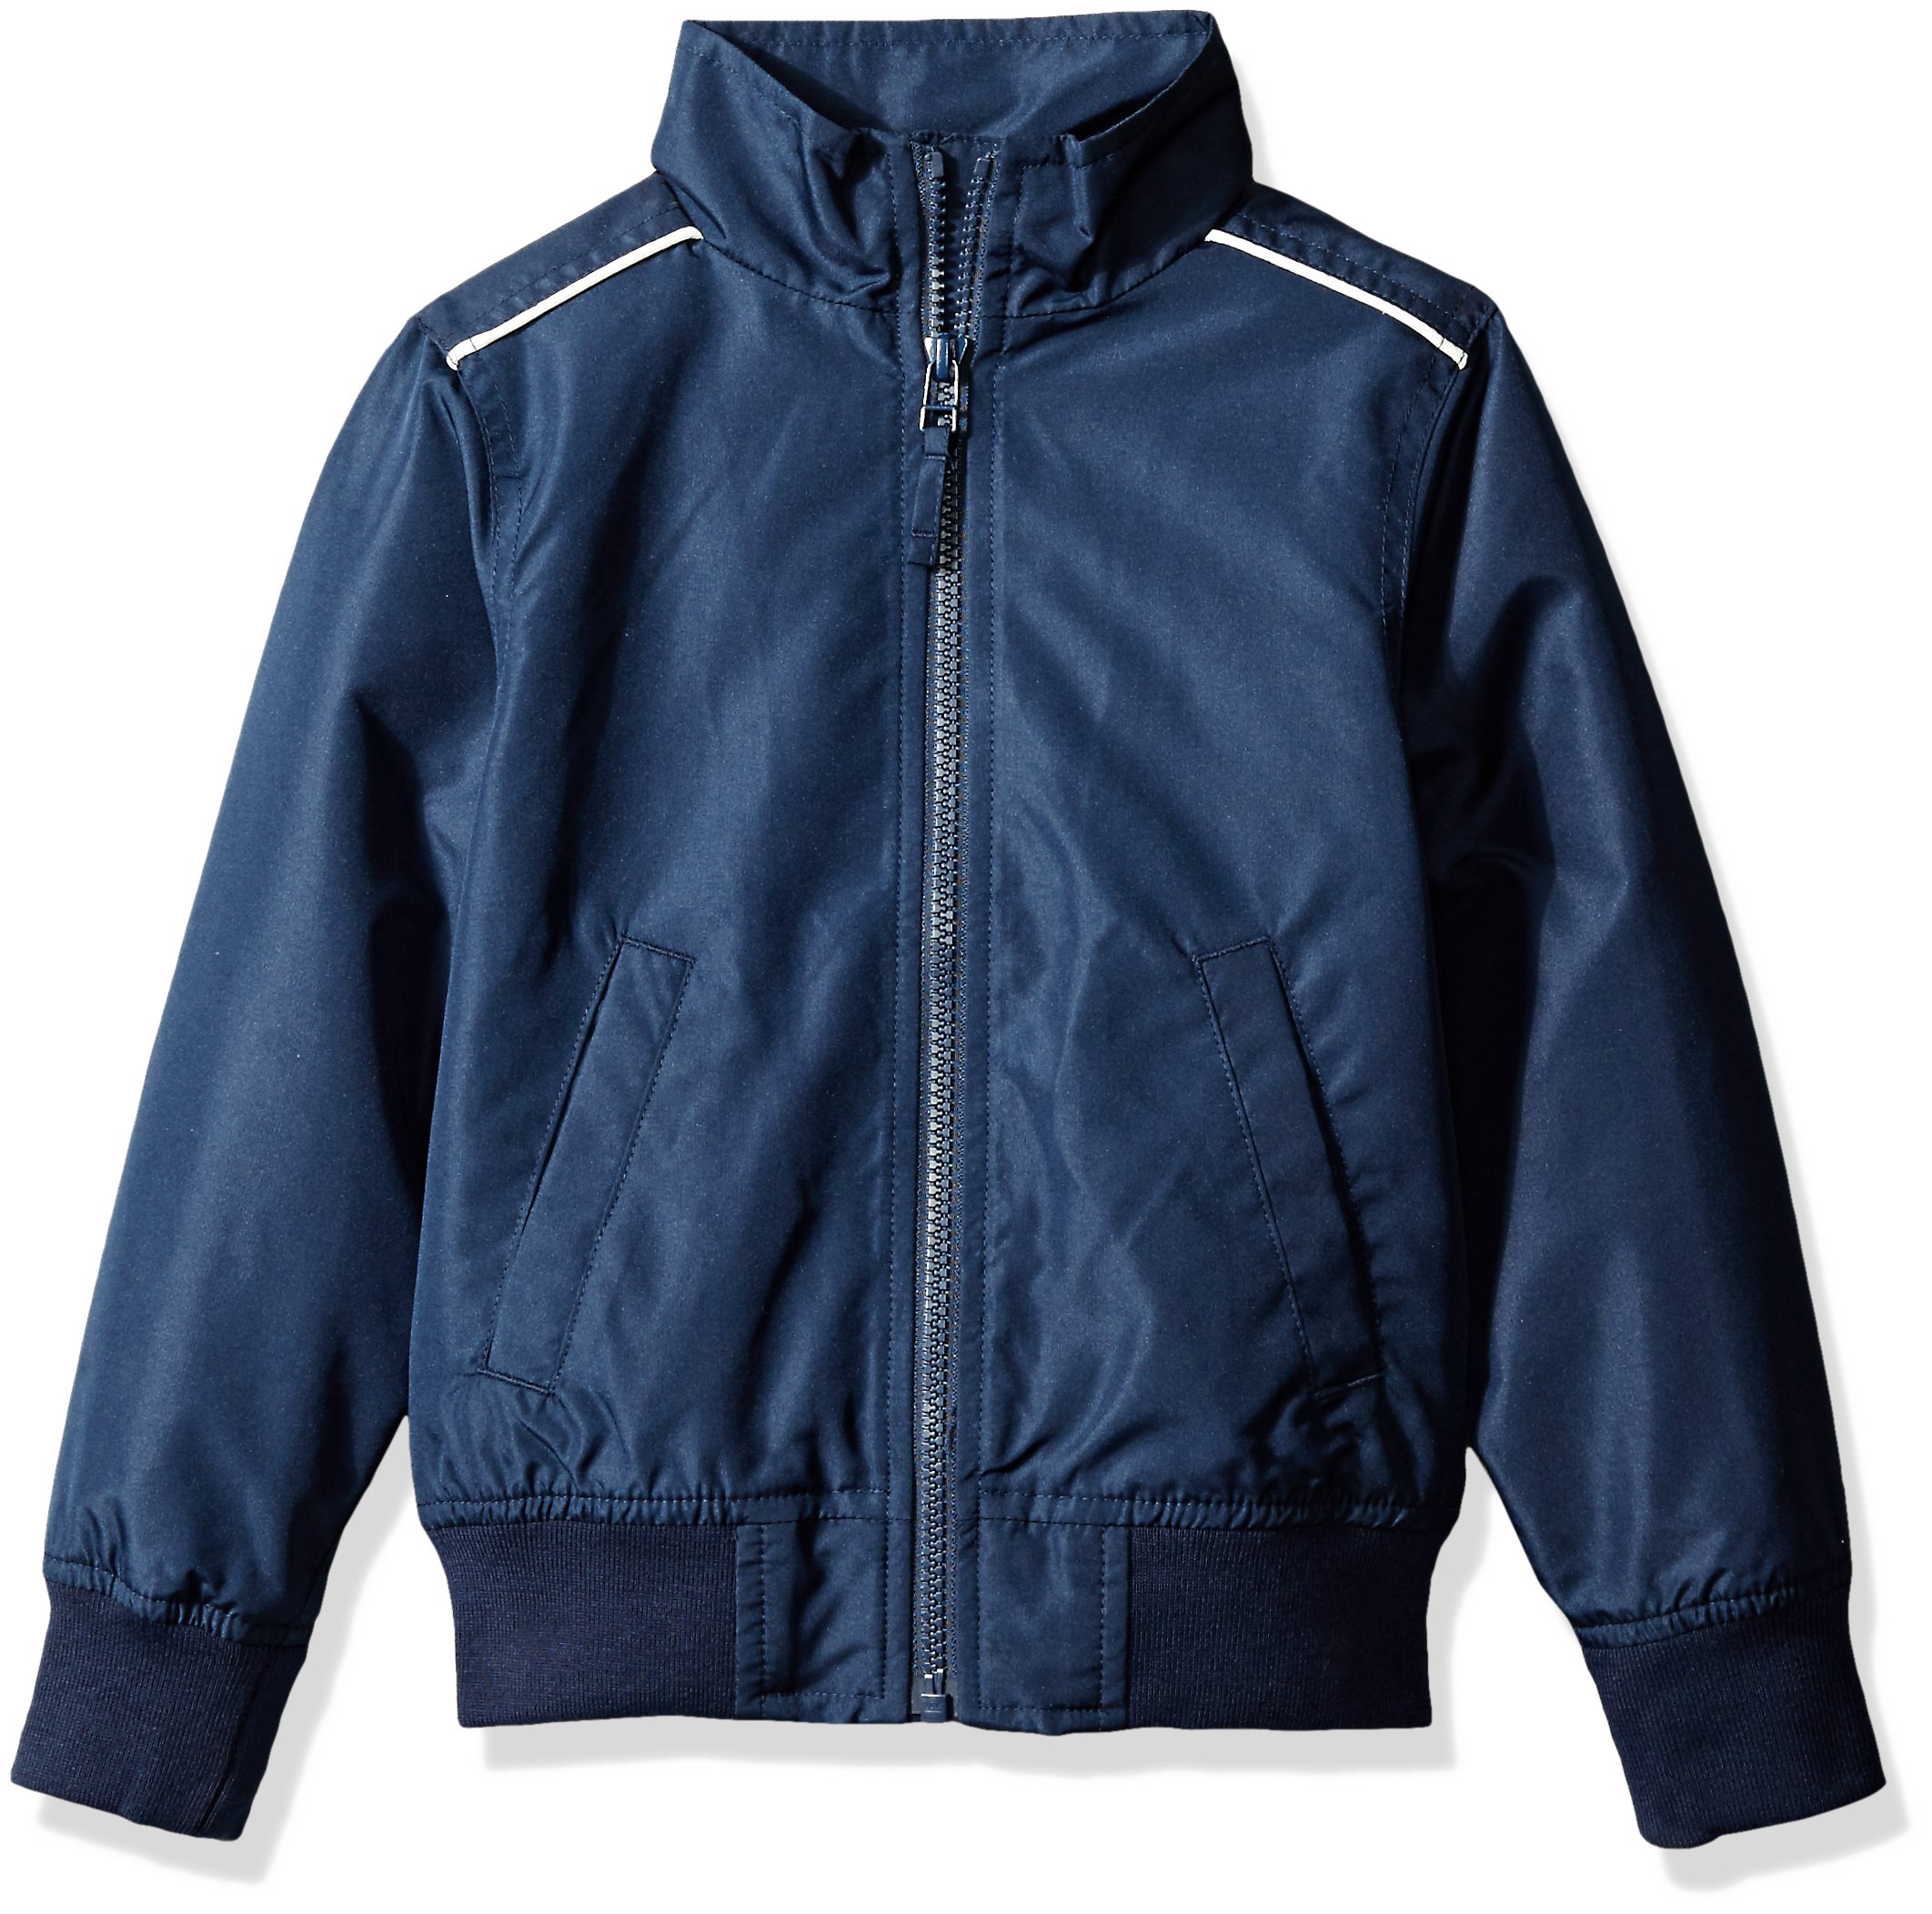 The Children's Place Big Boys' Uniform Jacket, Tidal, Large/10/12 by The Children's Place